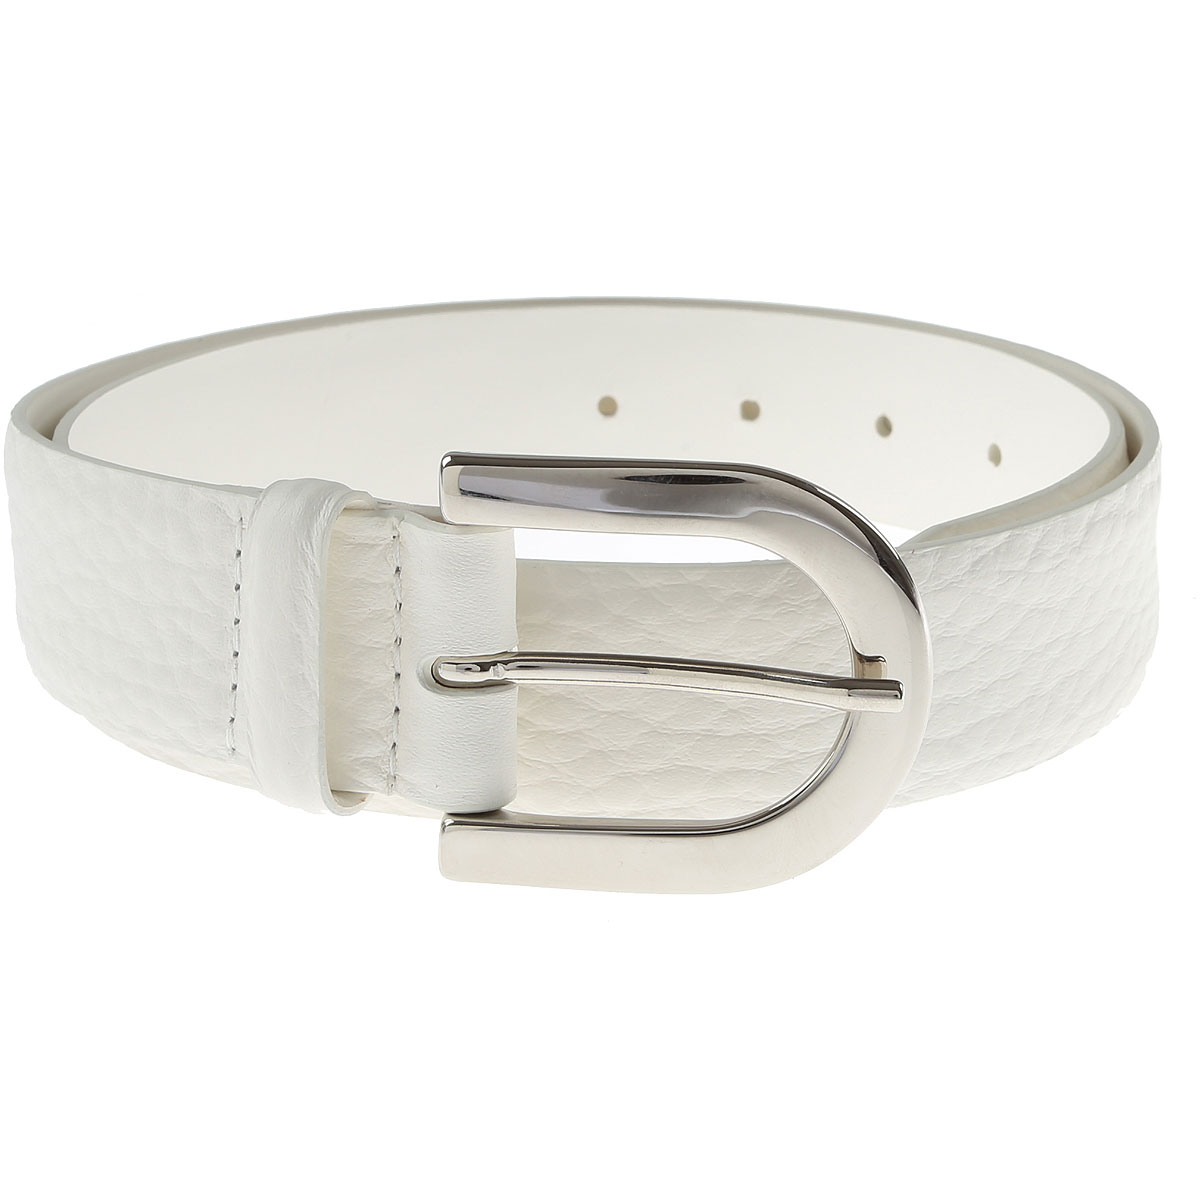 Orciani Belt for Women, White, Leather, 2017, 32 inches - 80 cm 30 inches - 75 cm